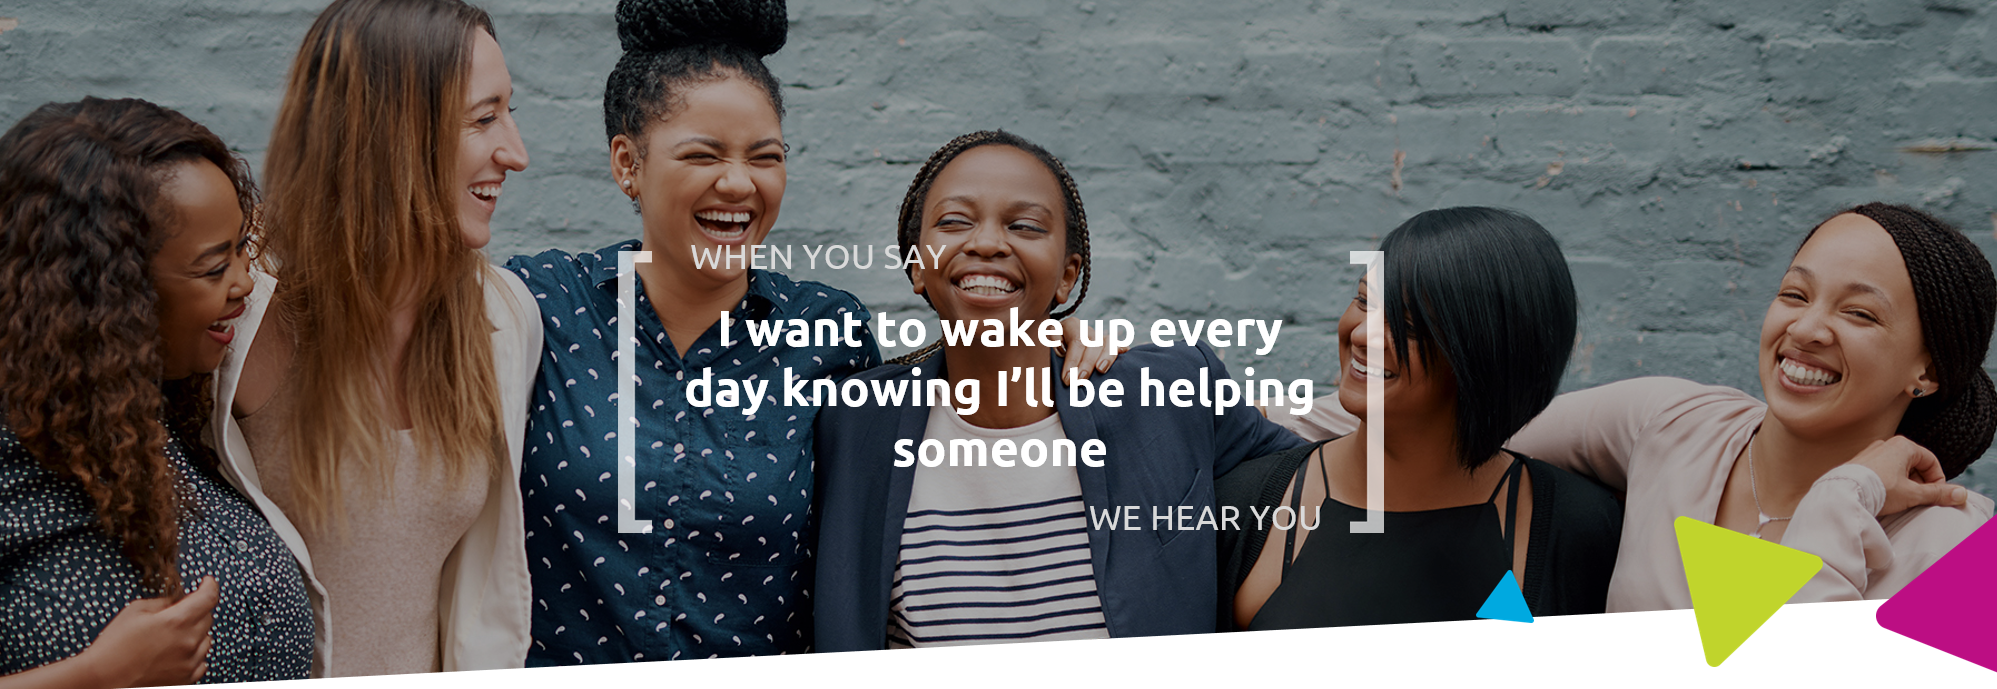 When you say I want to wake up every day knowing I'll be helping someone, we hear you